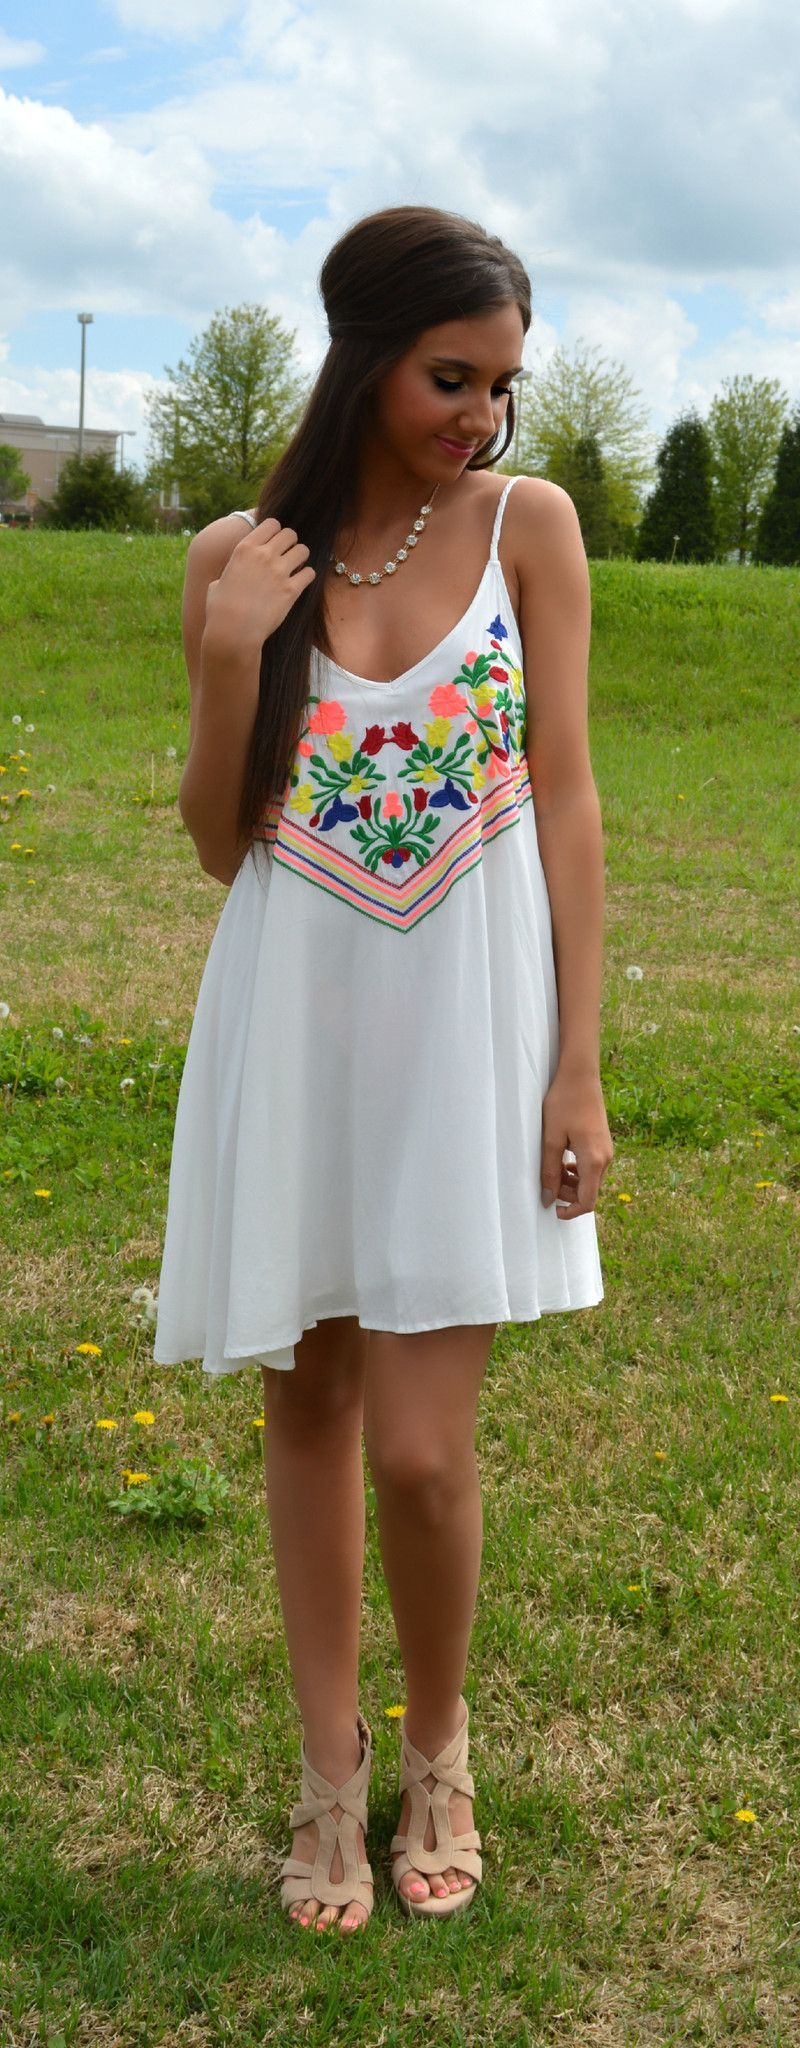 Lost In Love Floral Embroidered Dress | Haute Pink Boutique